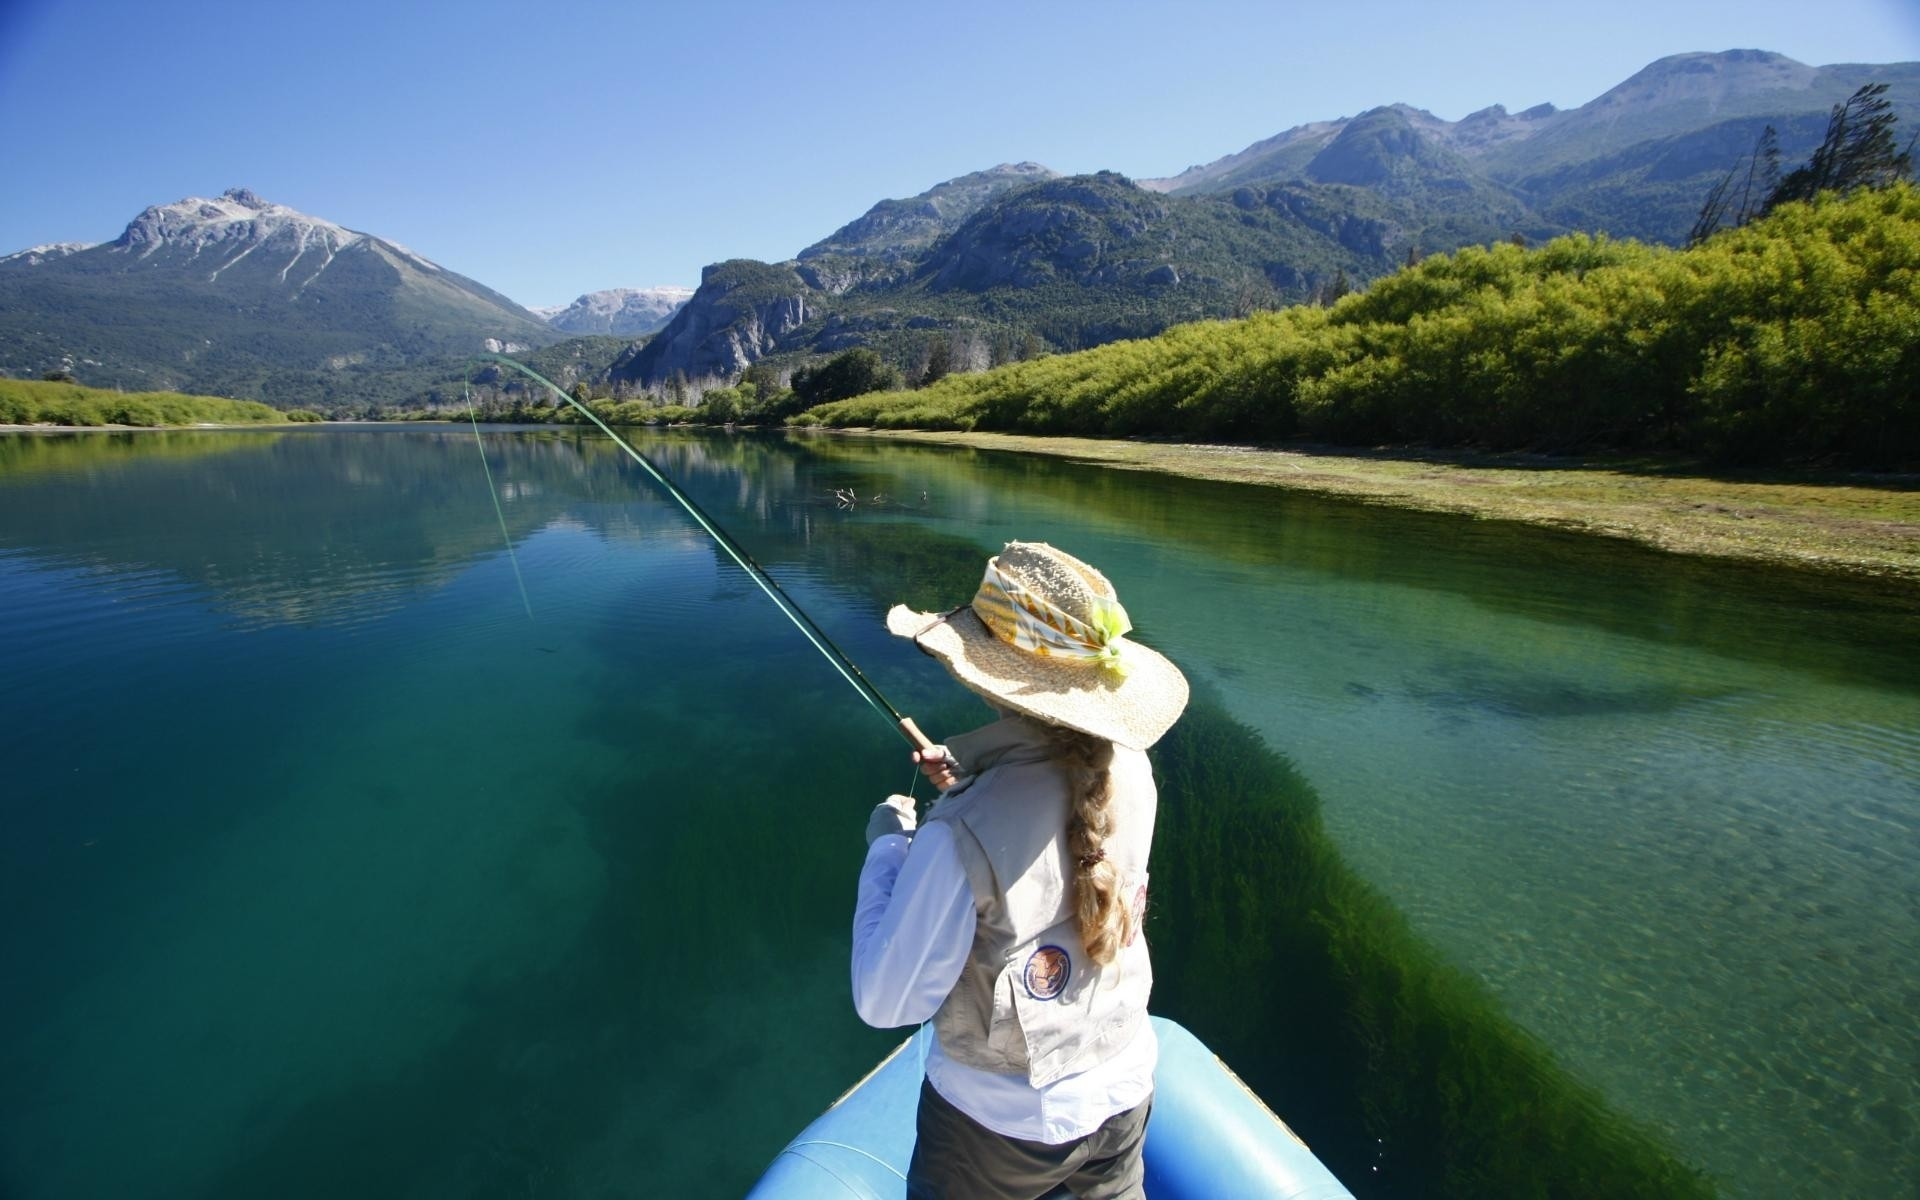 sprts fishing landscapes lakes rivers boats mountains mood people 1920x1200